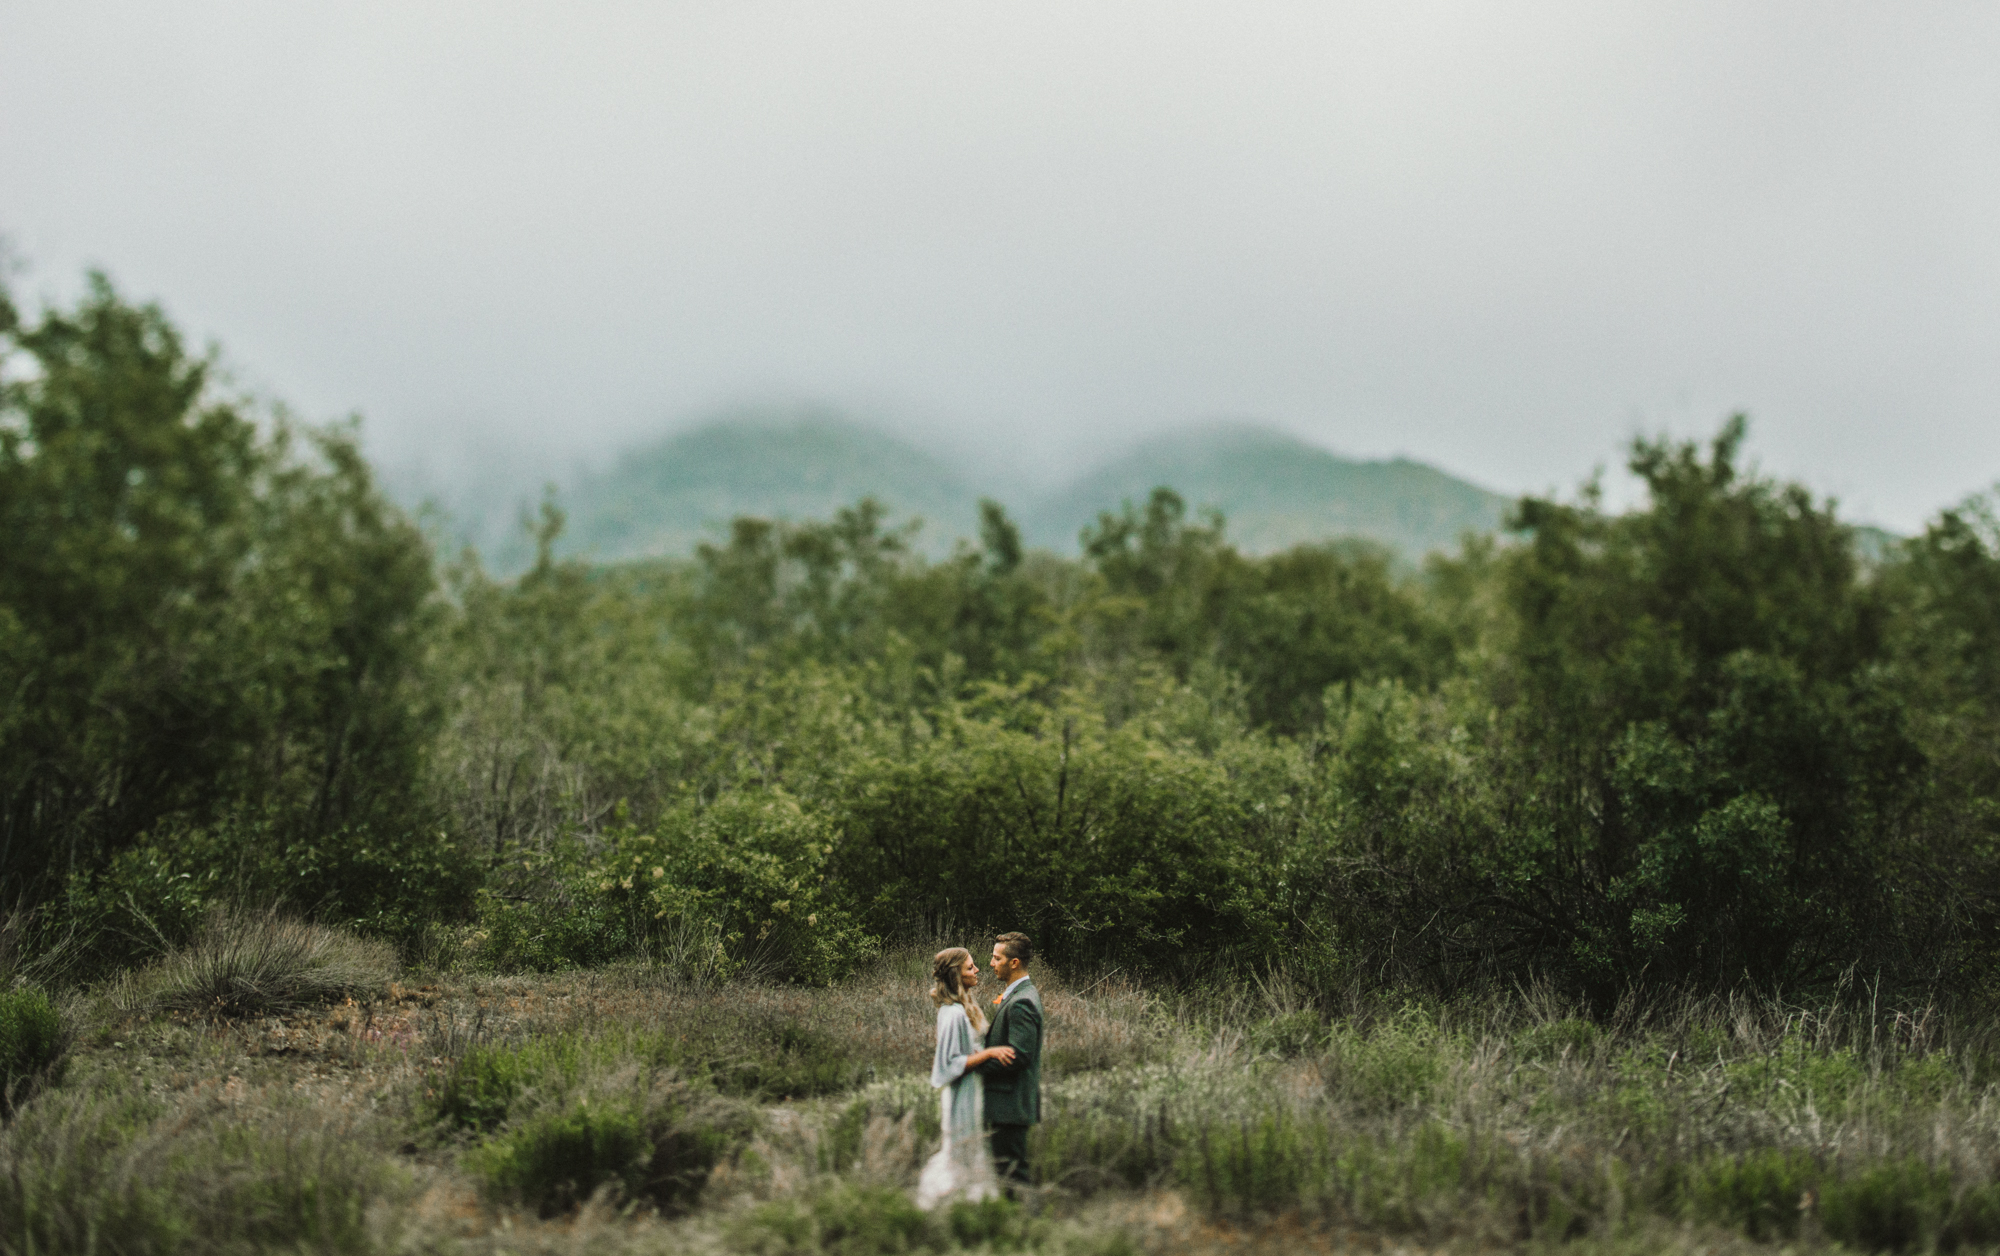 Isaiah & Taylor Photography - Los Angeles - Destination Wedding Photographers - Oak Glen Wilshire Ranch Foggy Forest Wedding-67.jpg